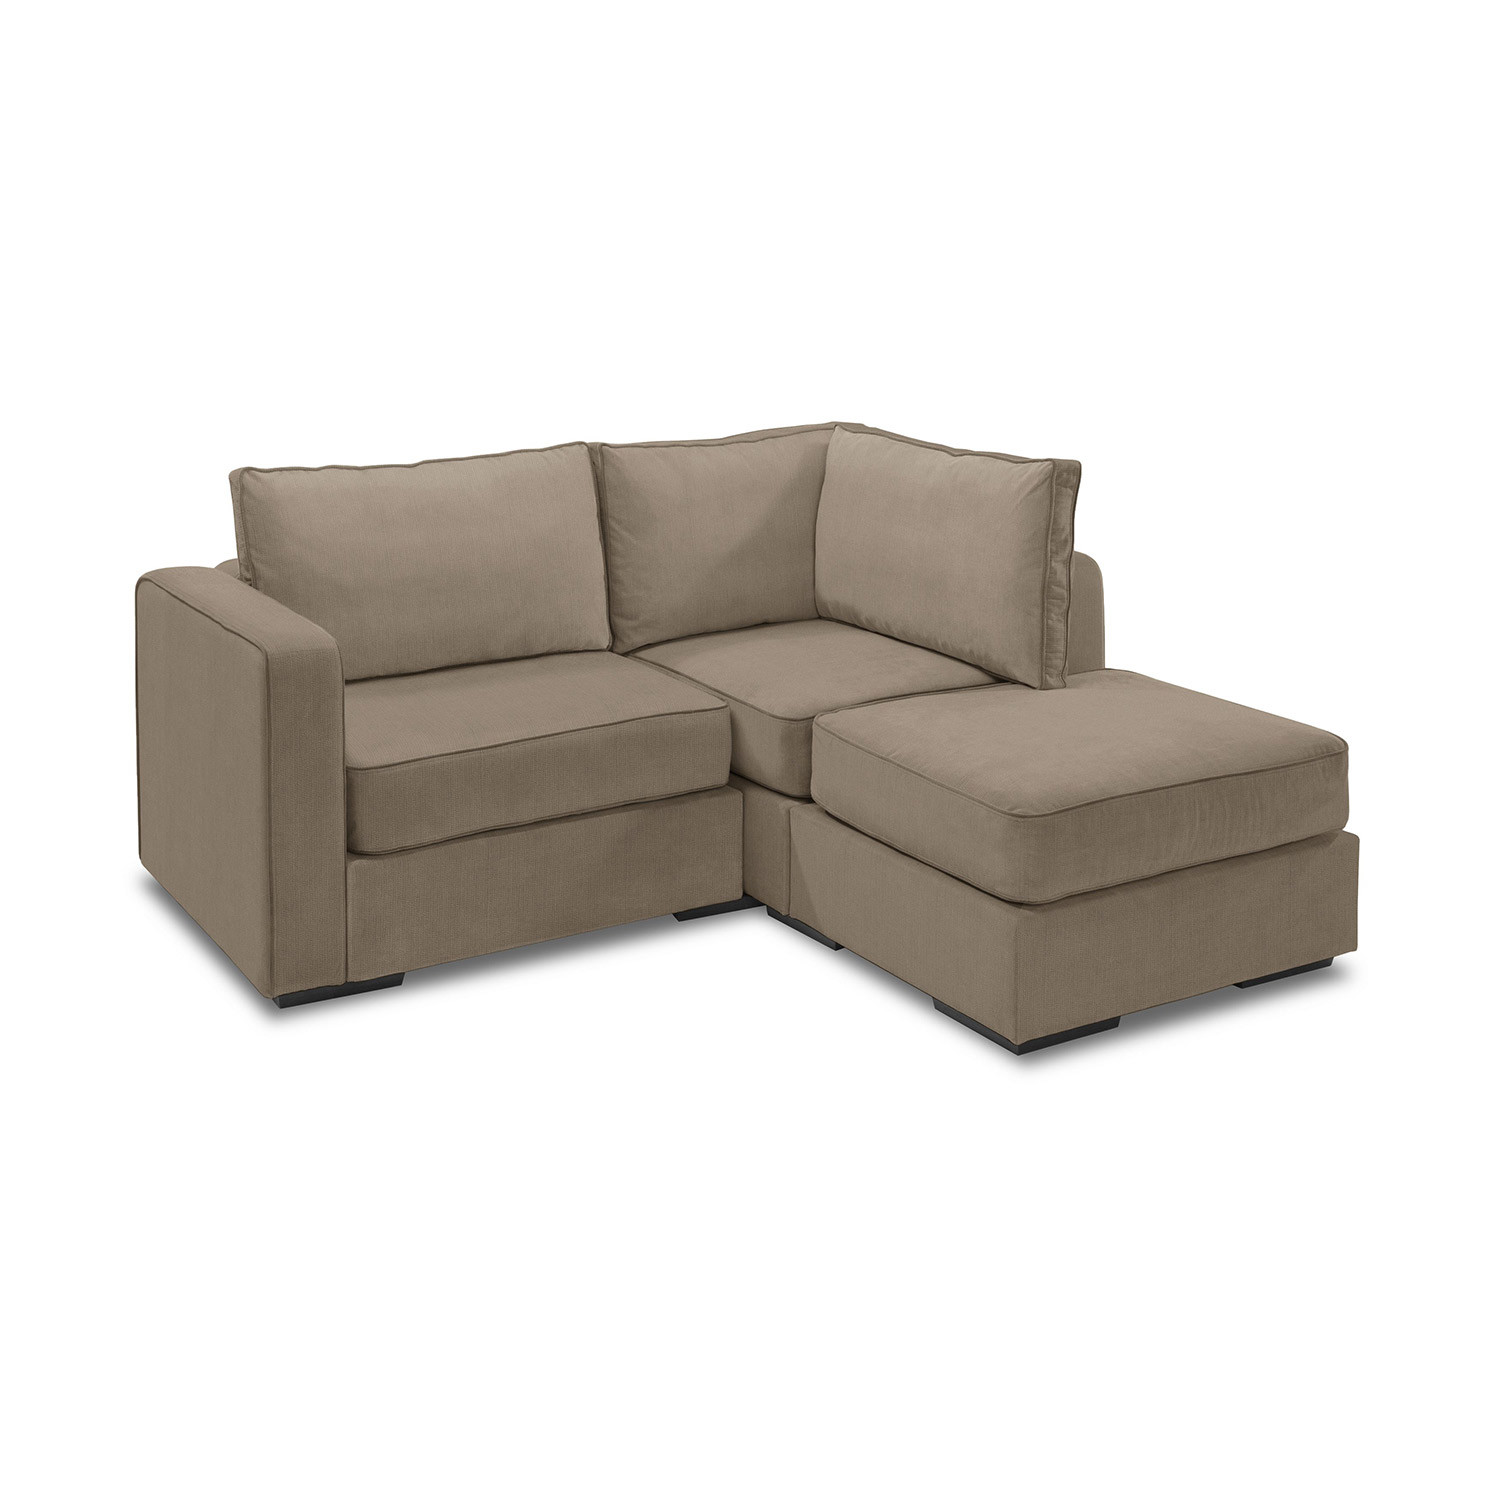 love sac chair covers with arms 5 series sactionals small sectional taupe lovesac